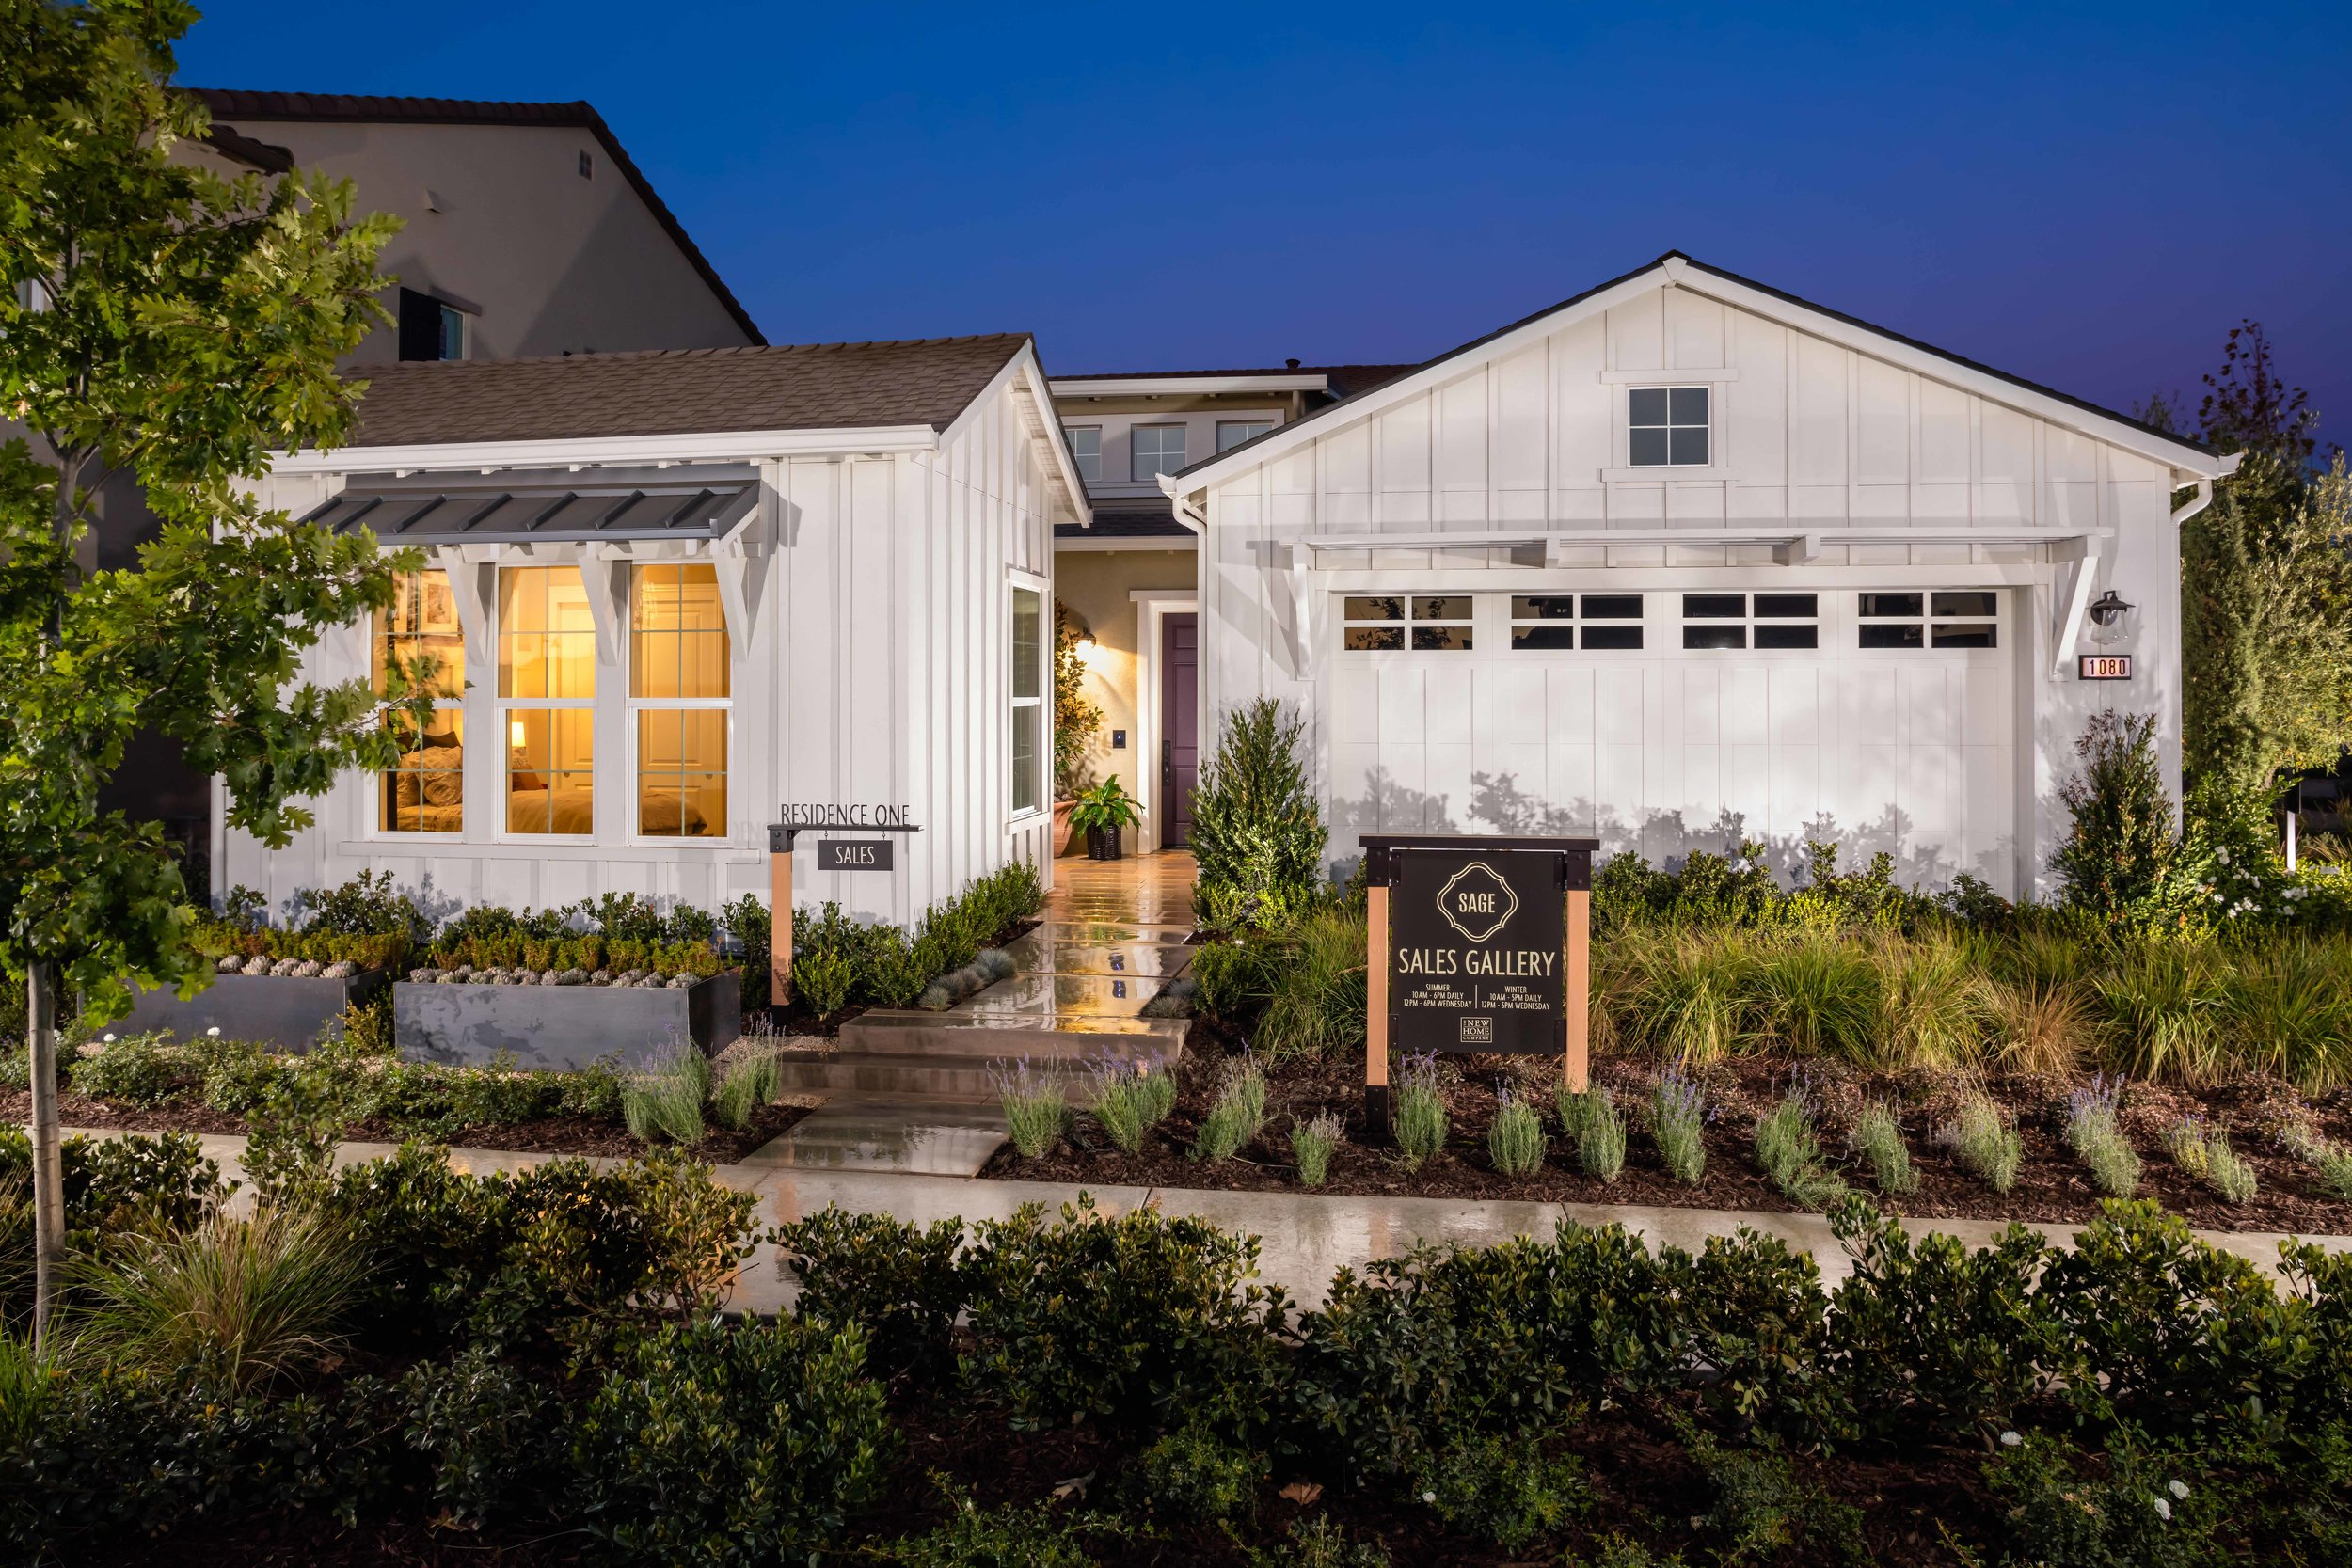 Sage at the Cannery    | Davis, California    AWARDS  +  2016 Gold Nugget Award  of Merit for Best Single Family Detached Home Under 2,000 Sq. Ft.  +  2016 National Silver Award  for Best Architectural Design of a Single Family Detached Priced $500,000-$750,000